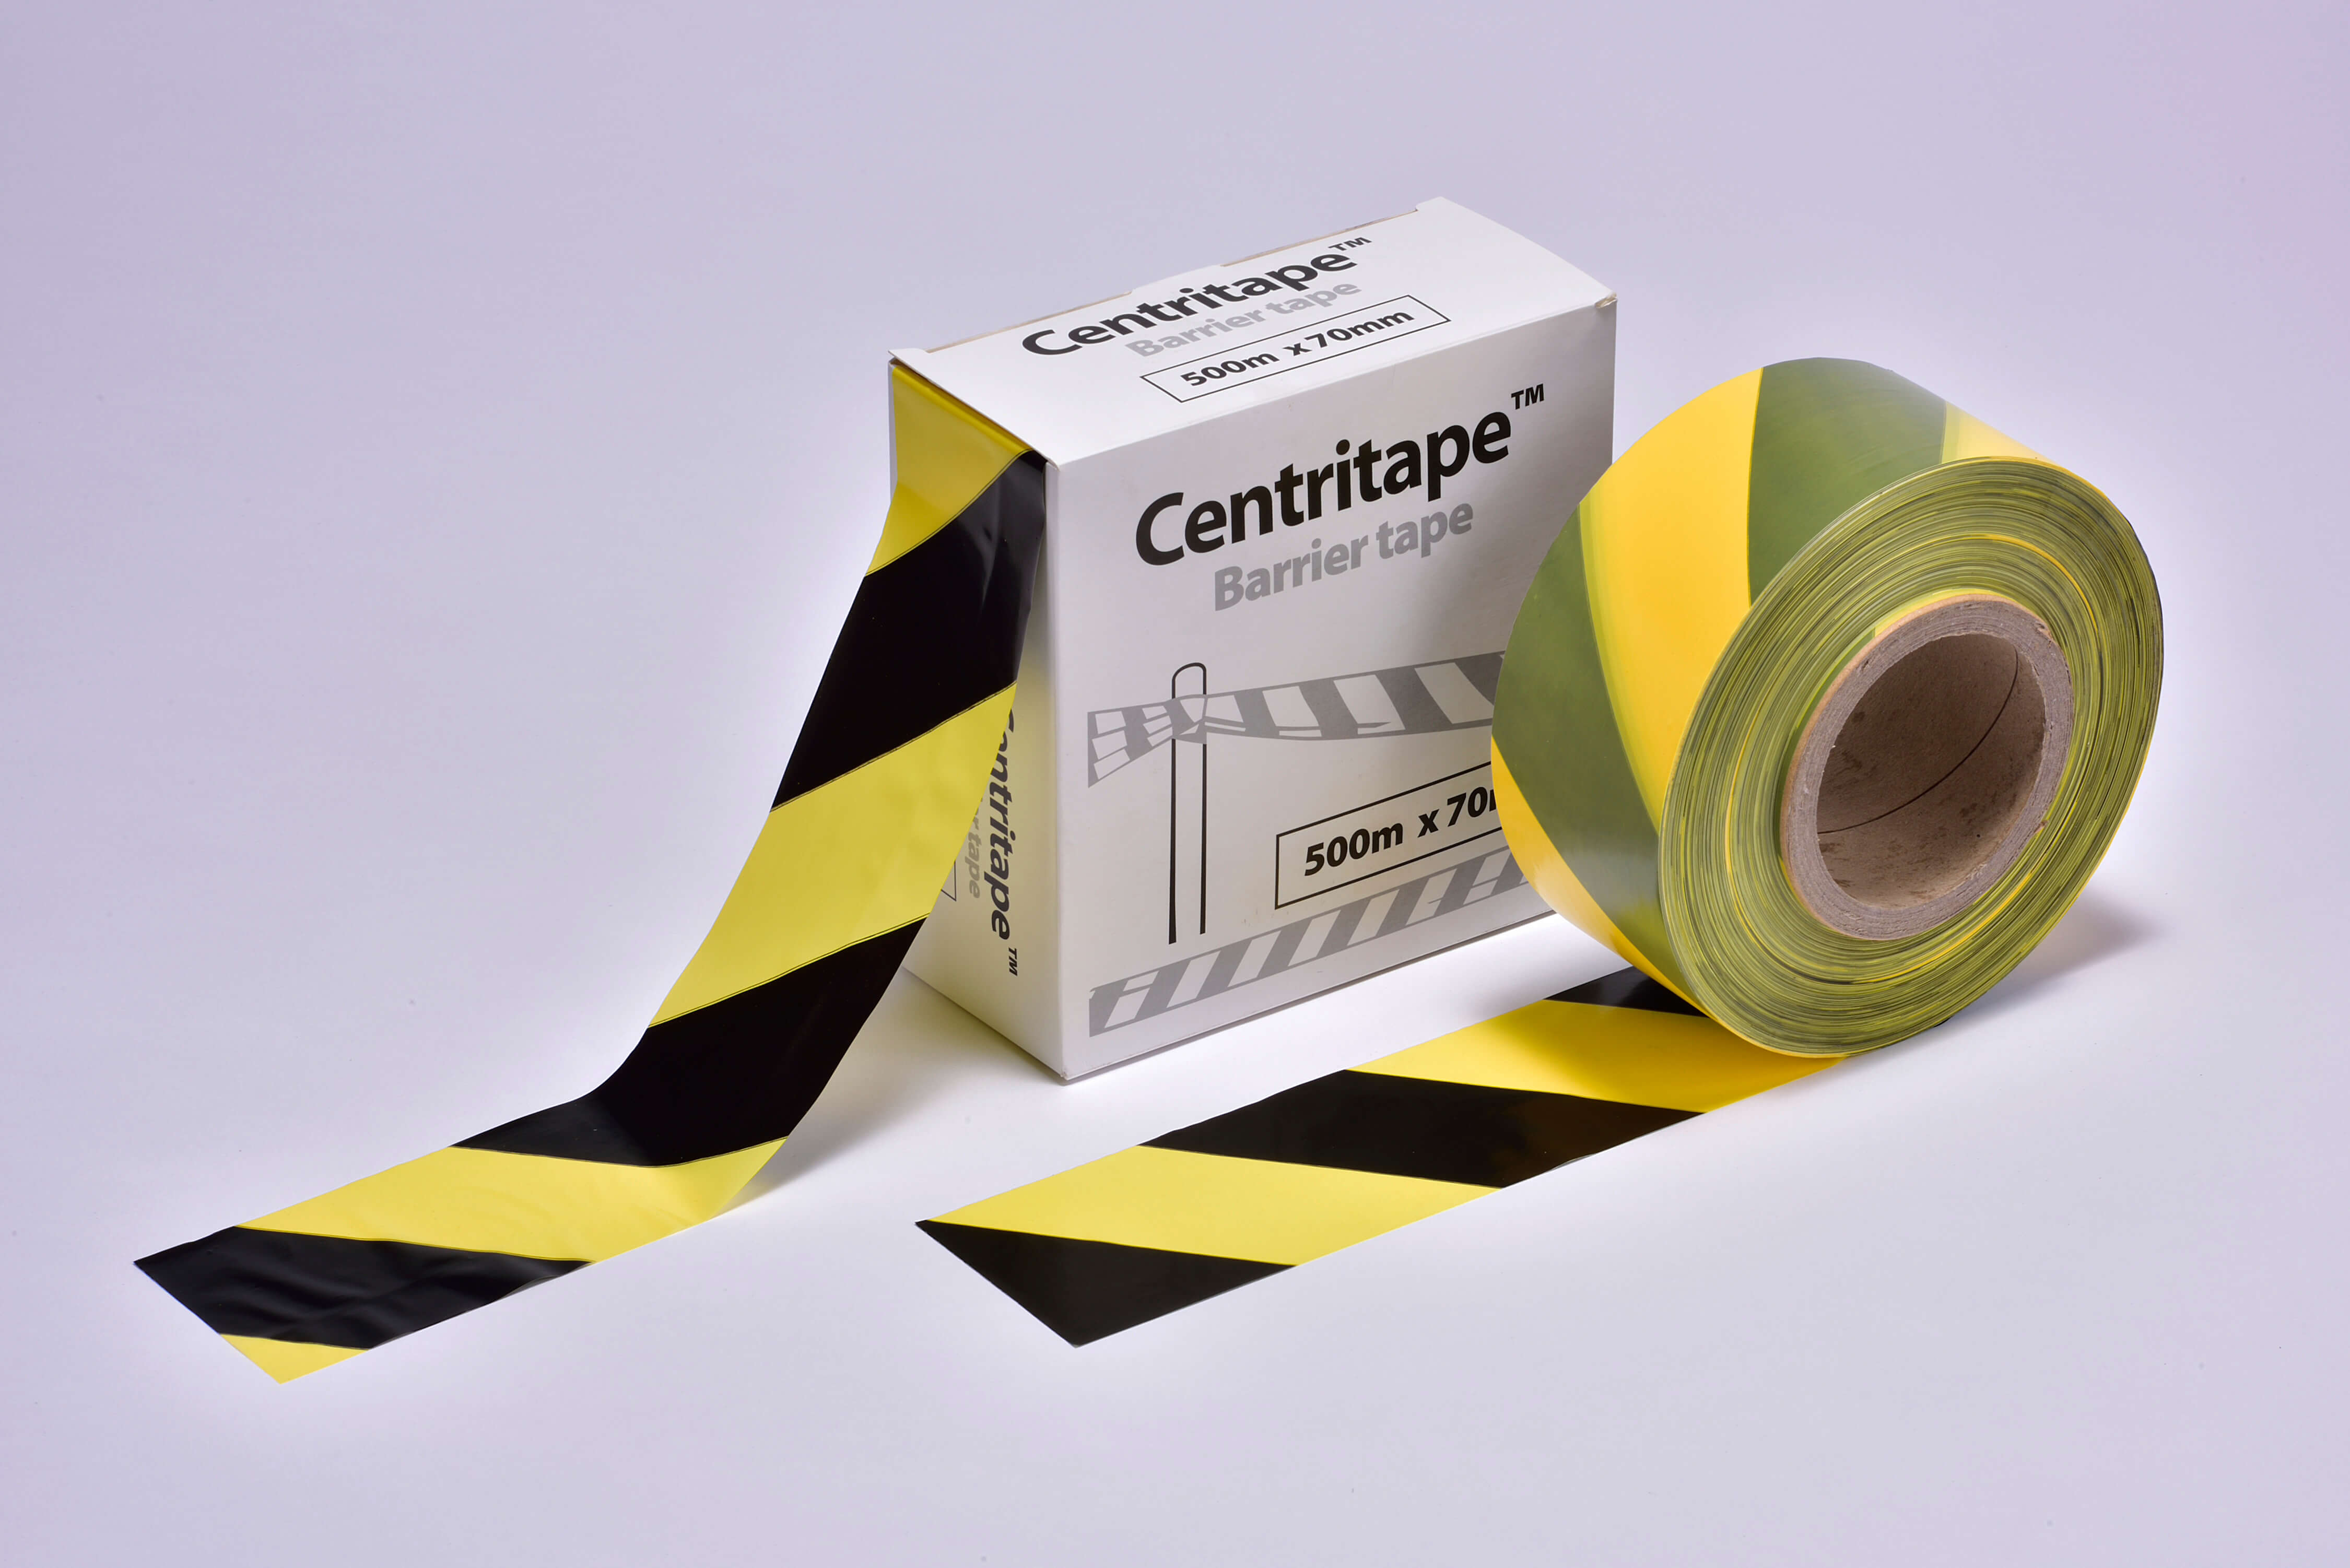 Locata® Super Strong Barrier Tape